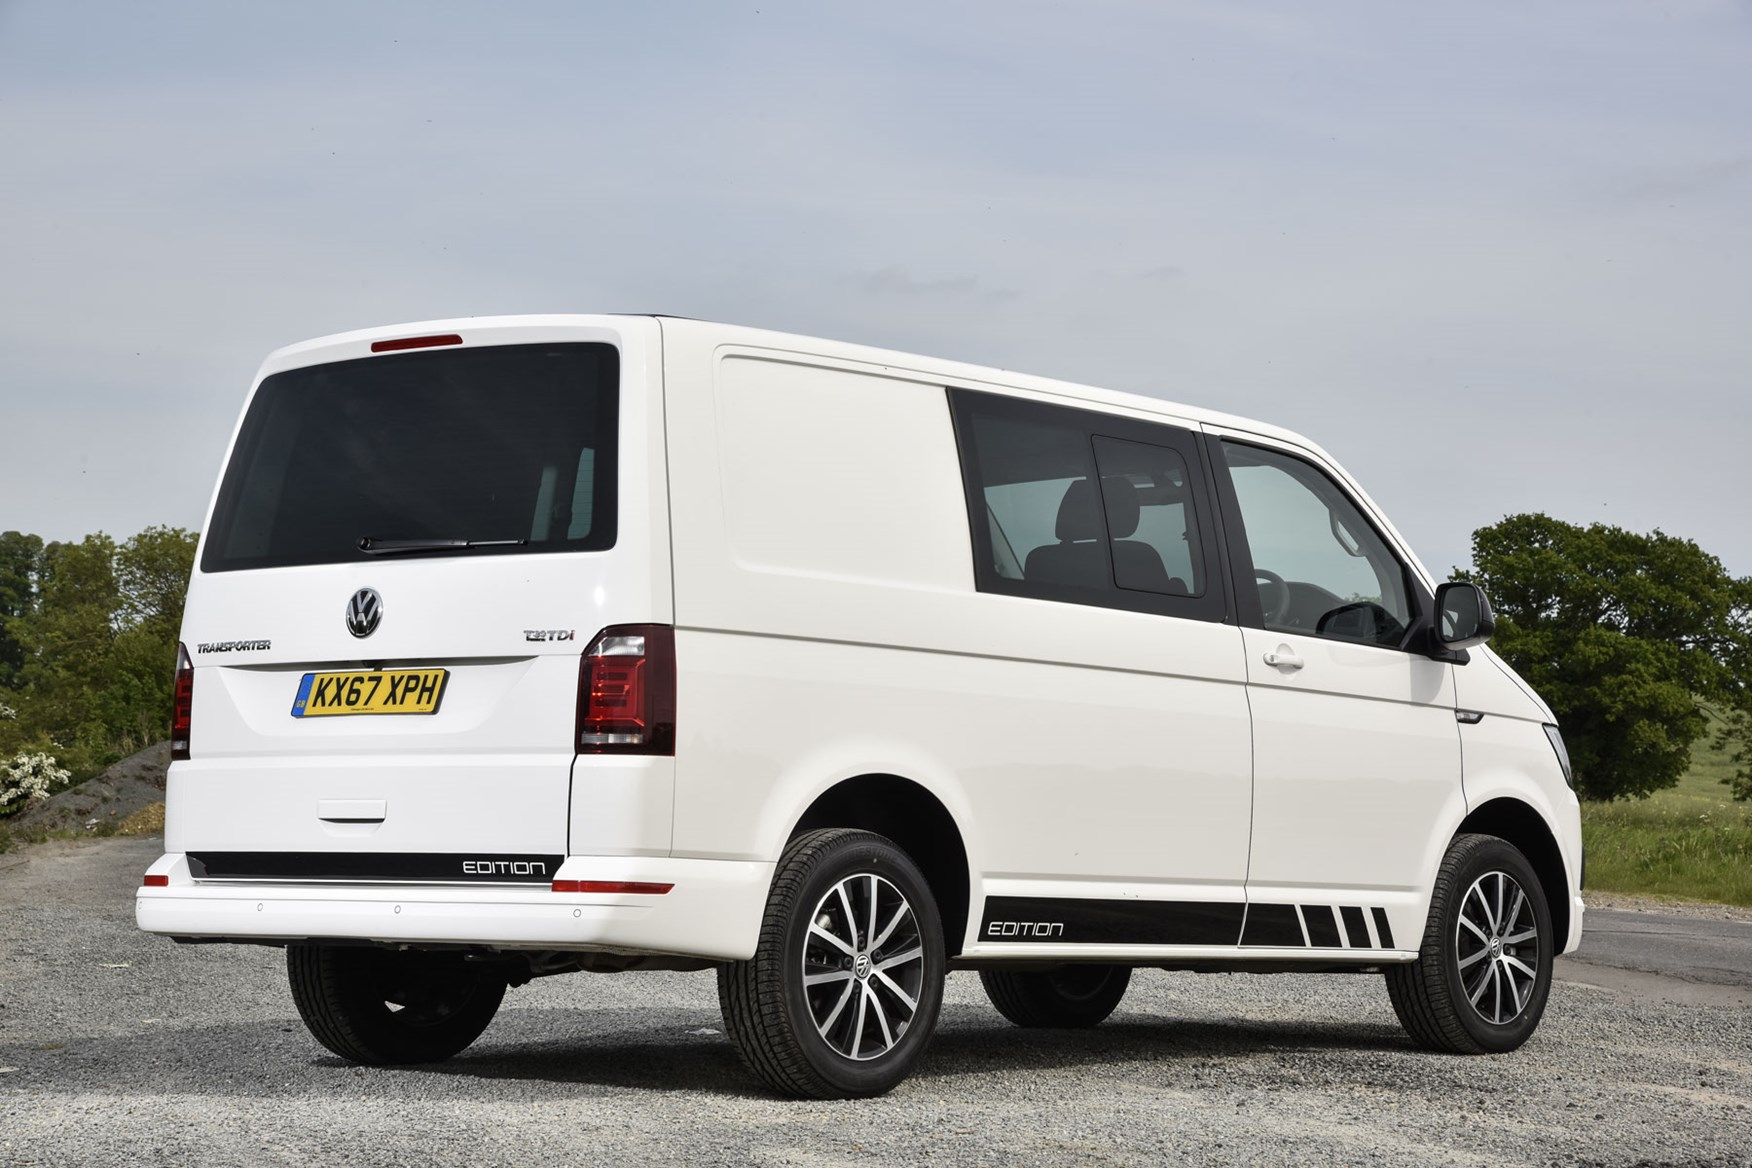 2acb4f60949 VW Transporter Edition review VW Transporter Edition review, white, rear  view ...